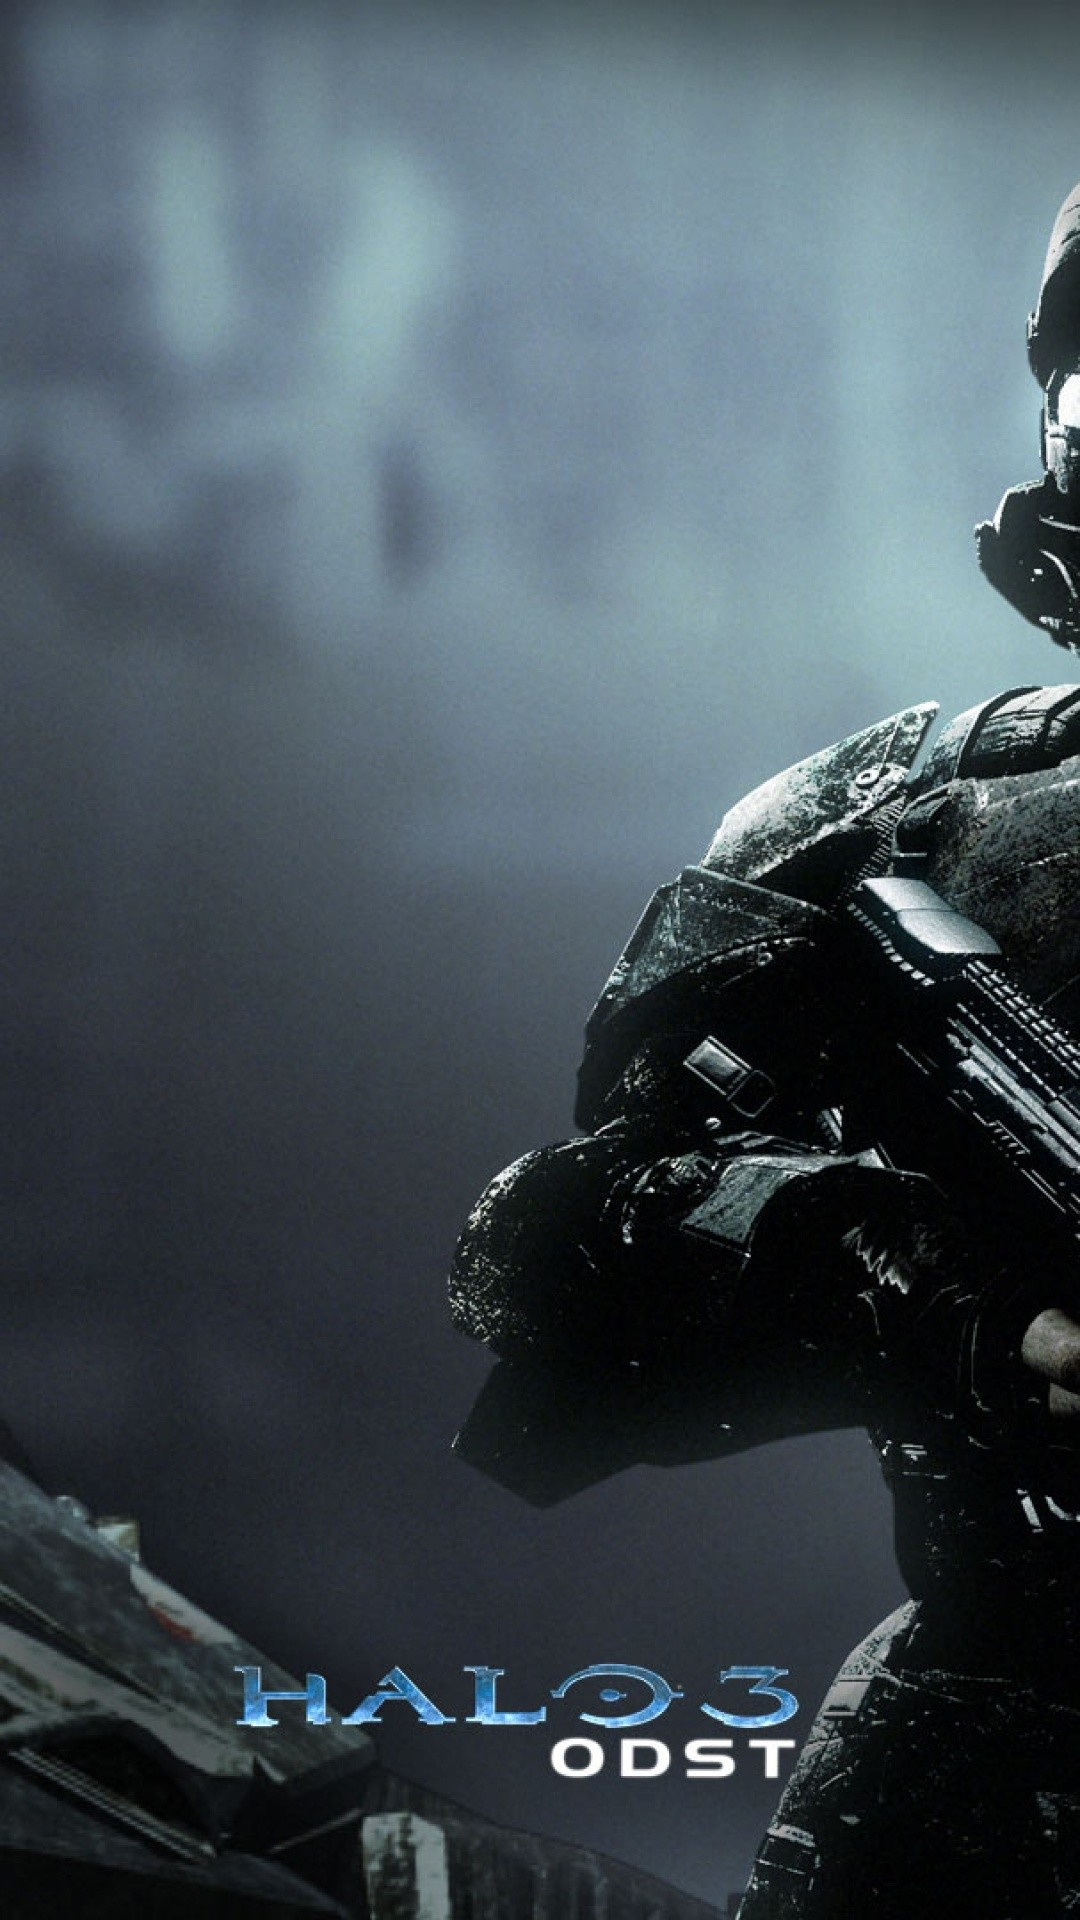 Halo 3 Odst iPhone 5 Wallpaper | ID: 31911